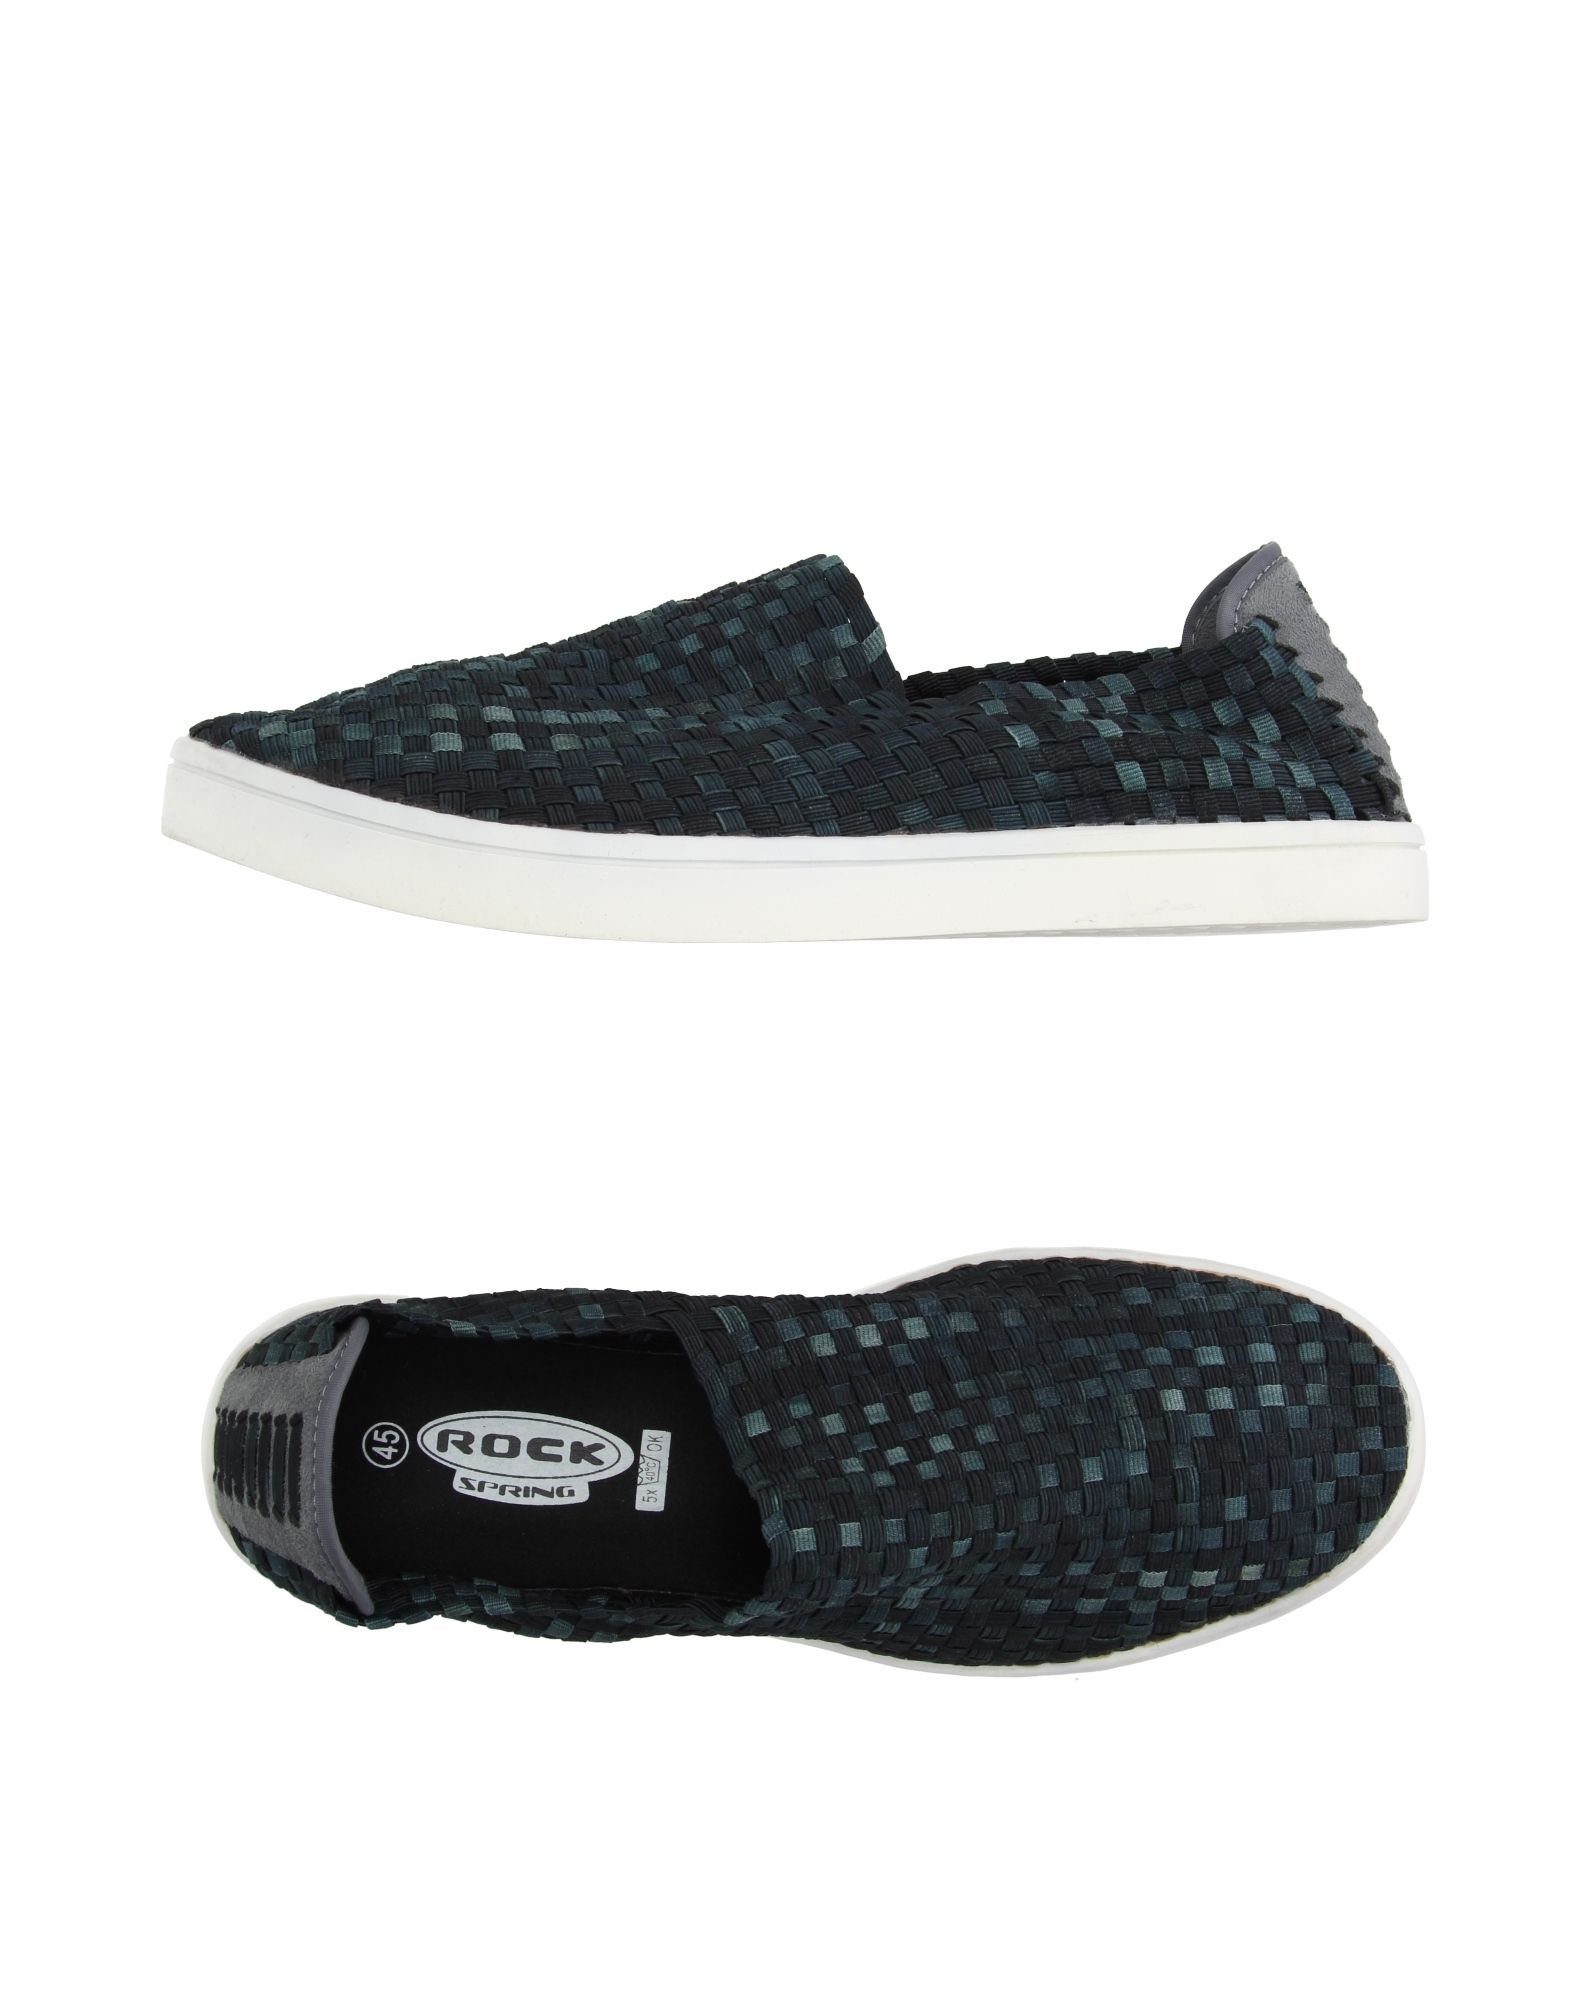 Rock Spring Sneakers - Men Rock Spring Sneakers Sneakers Sneakers online on  Australia - 11186777WH 81849a